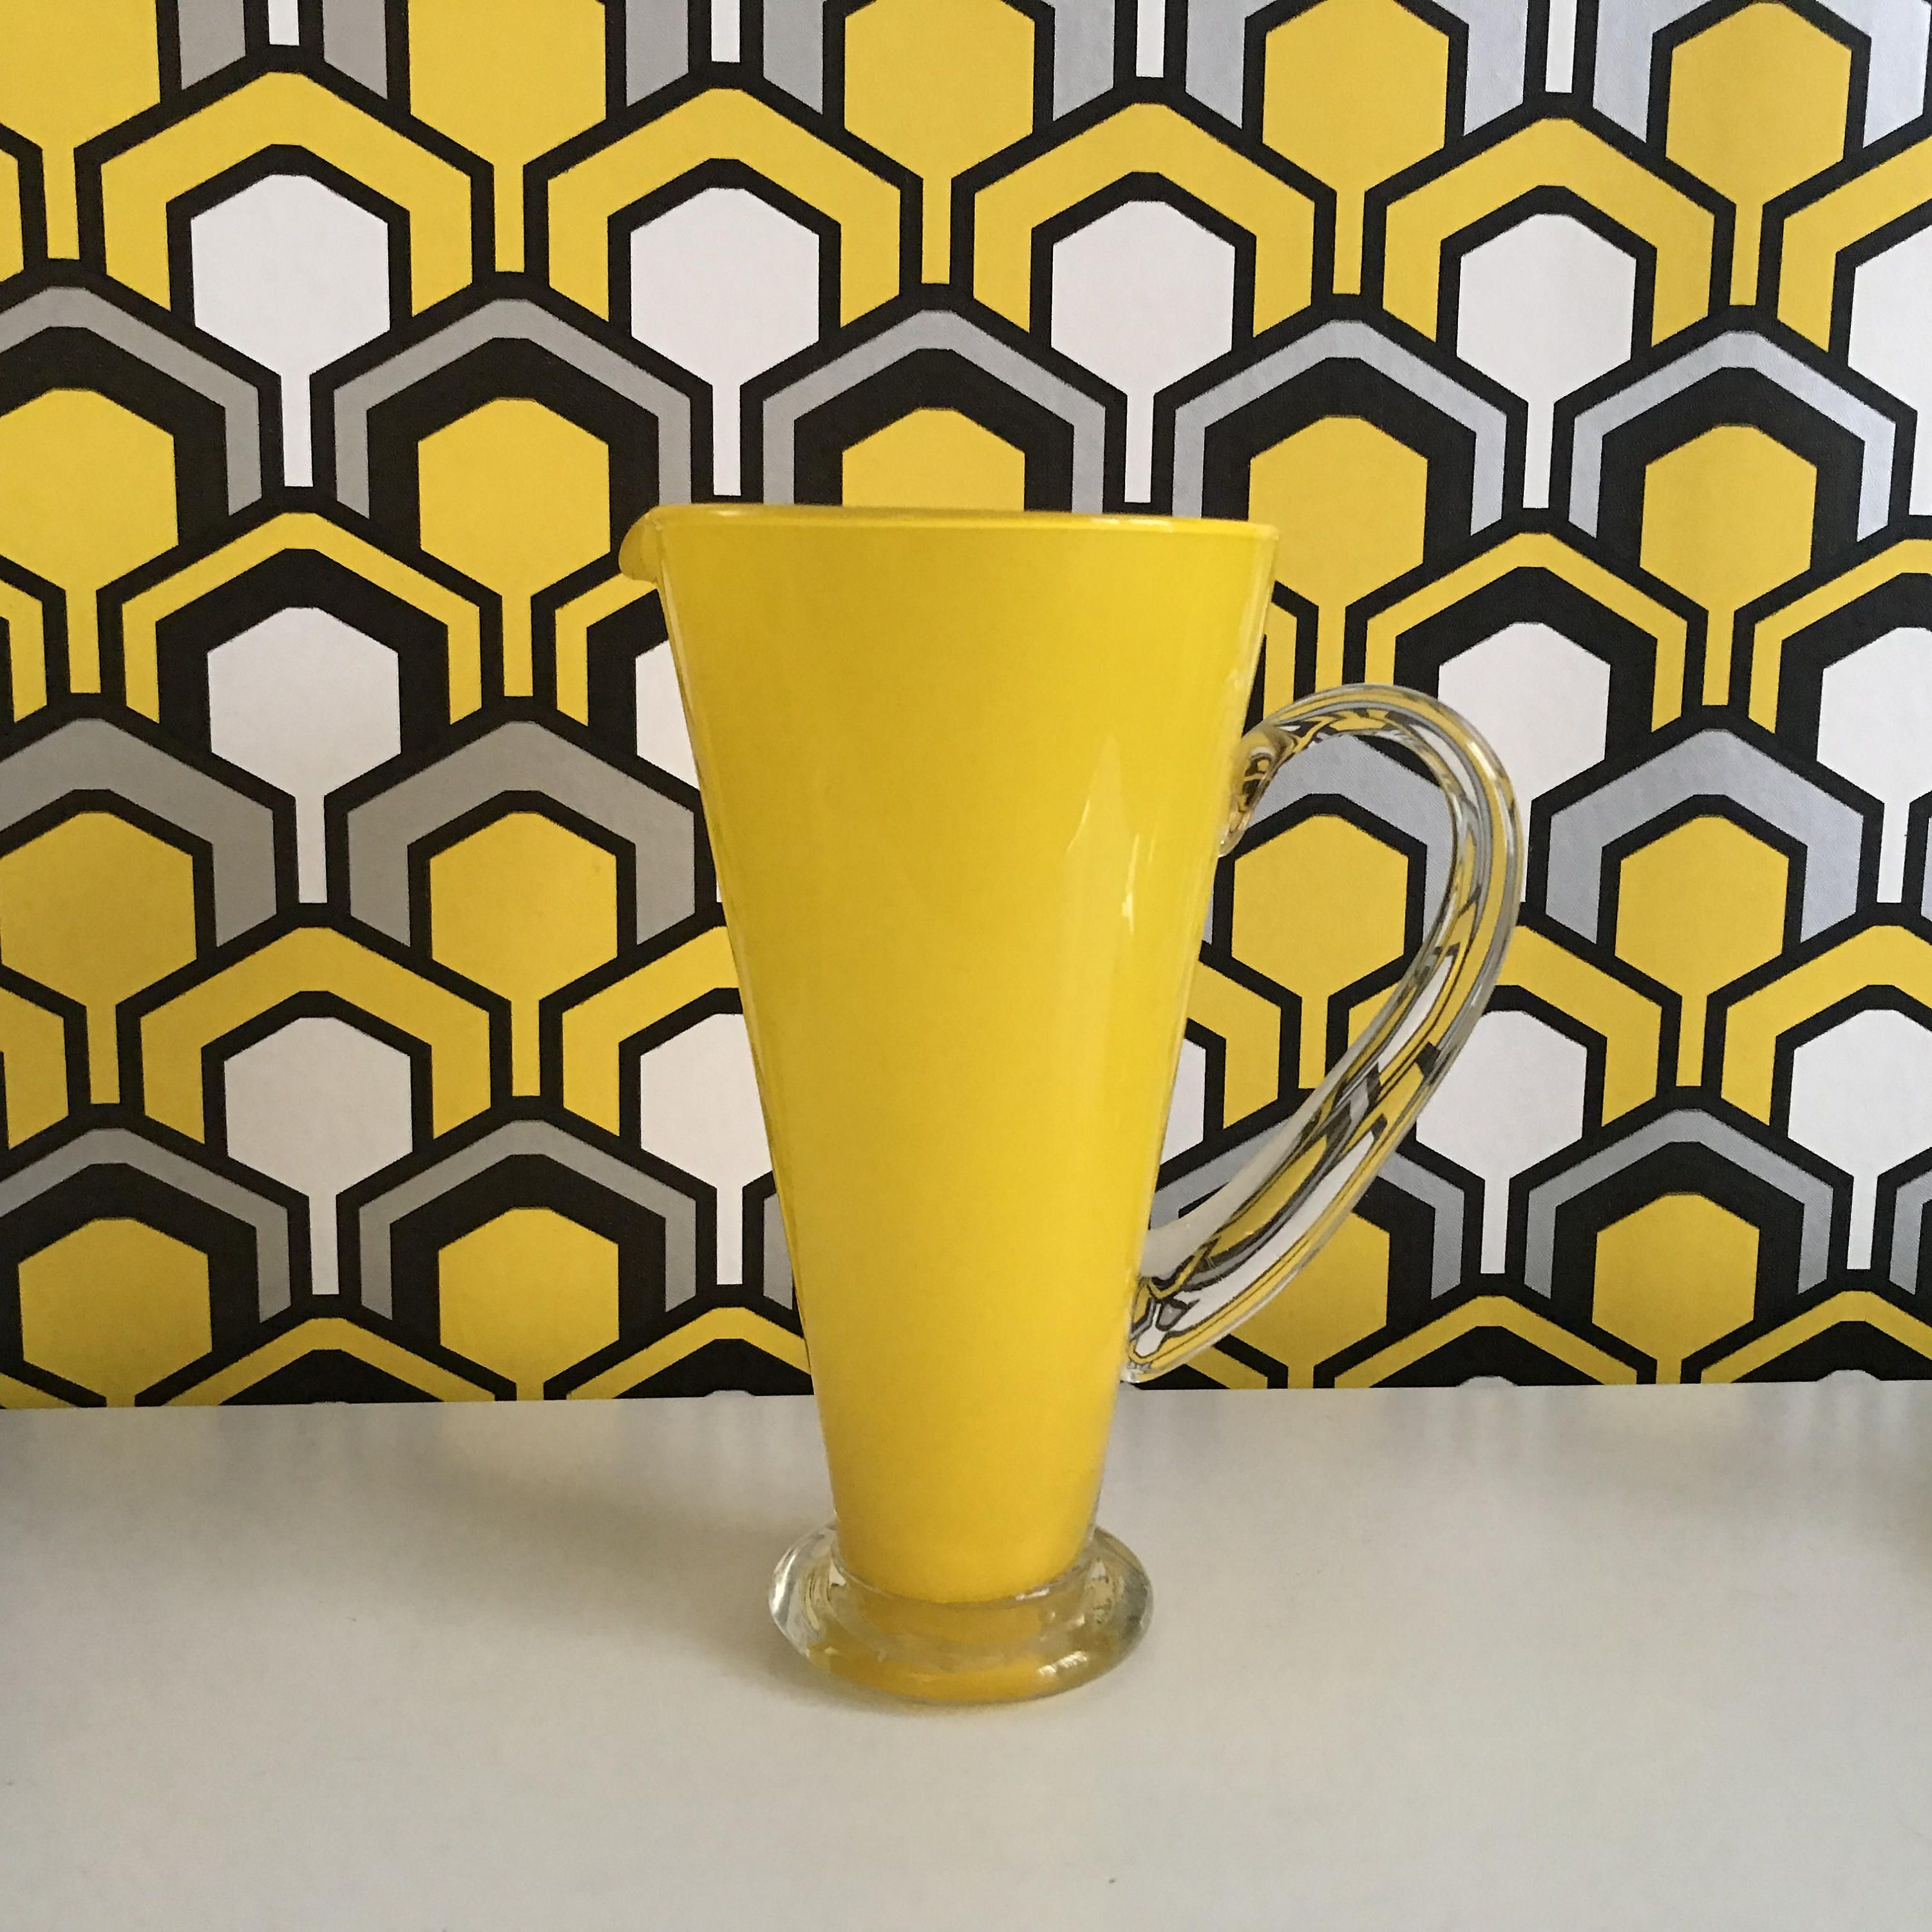 CASED GLASS conicular PITCHER in Yellow and White with